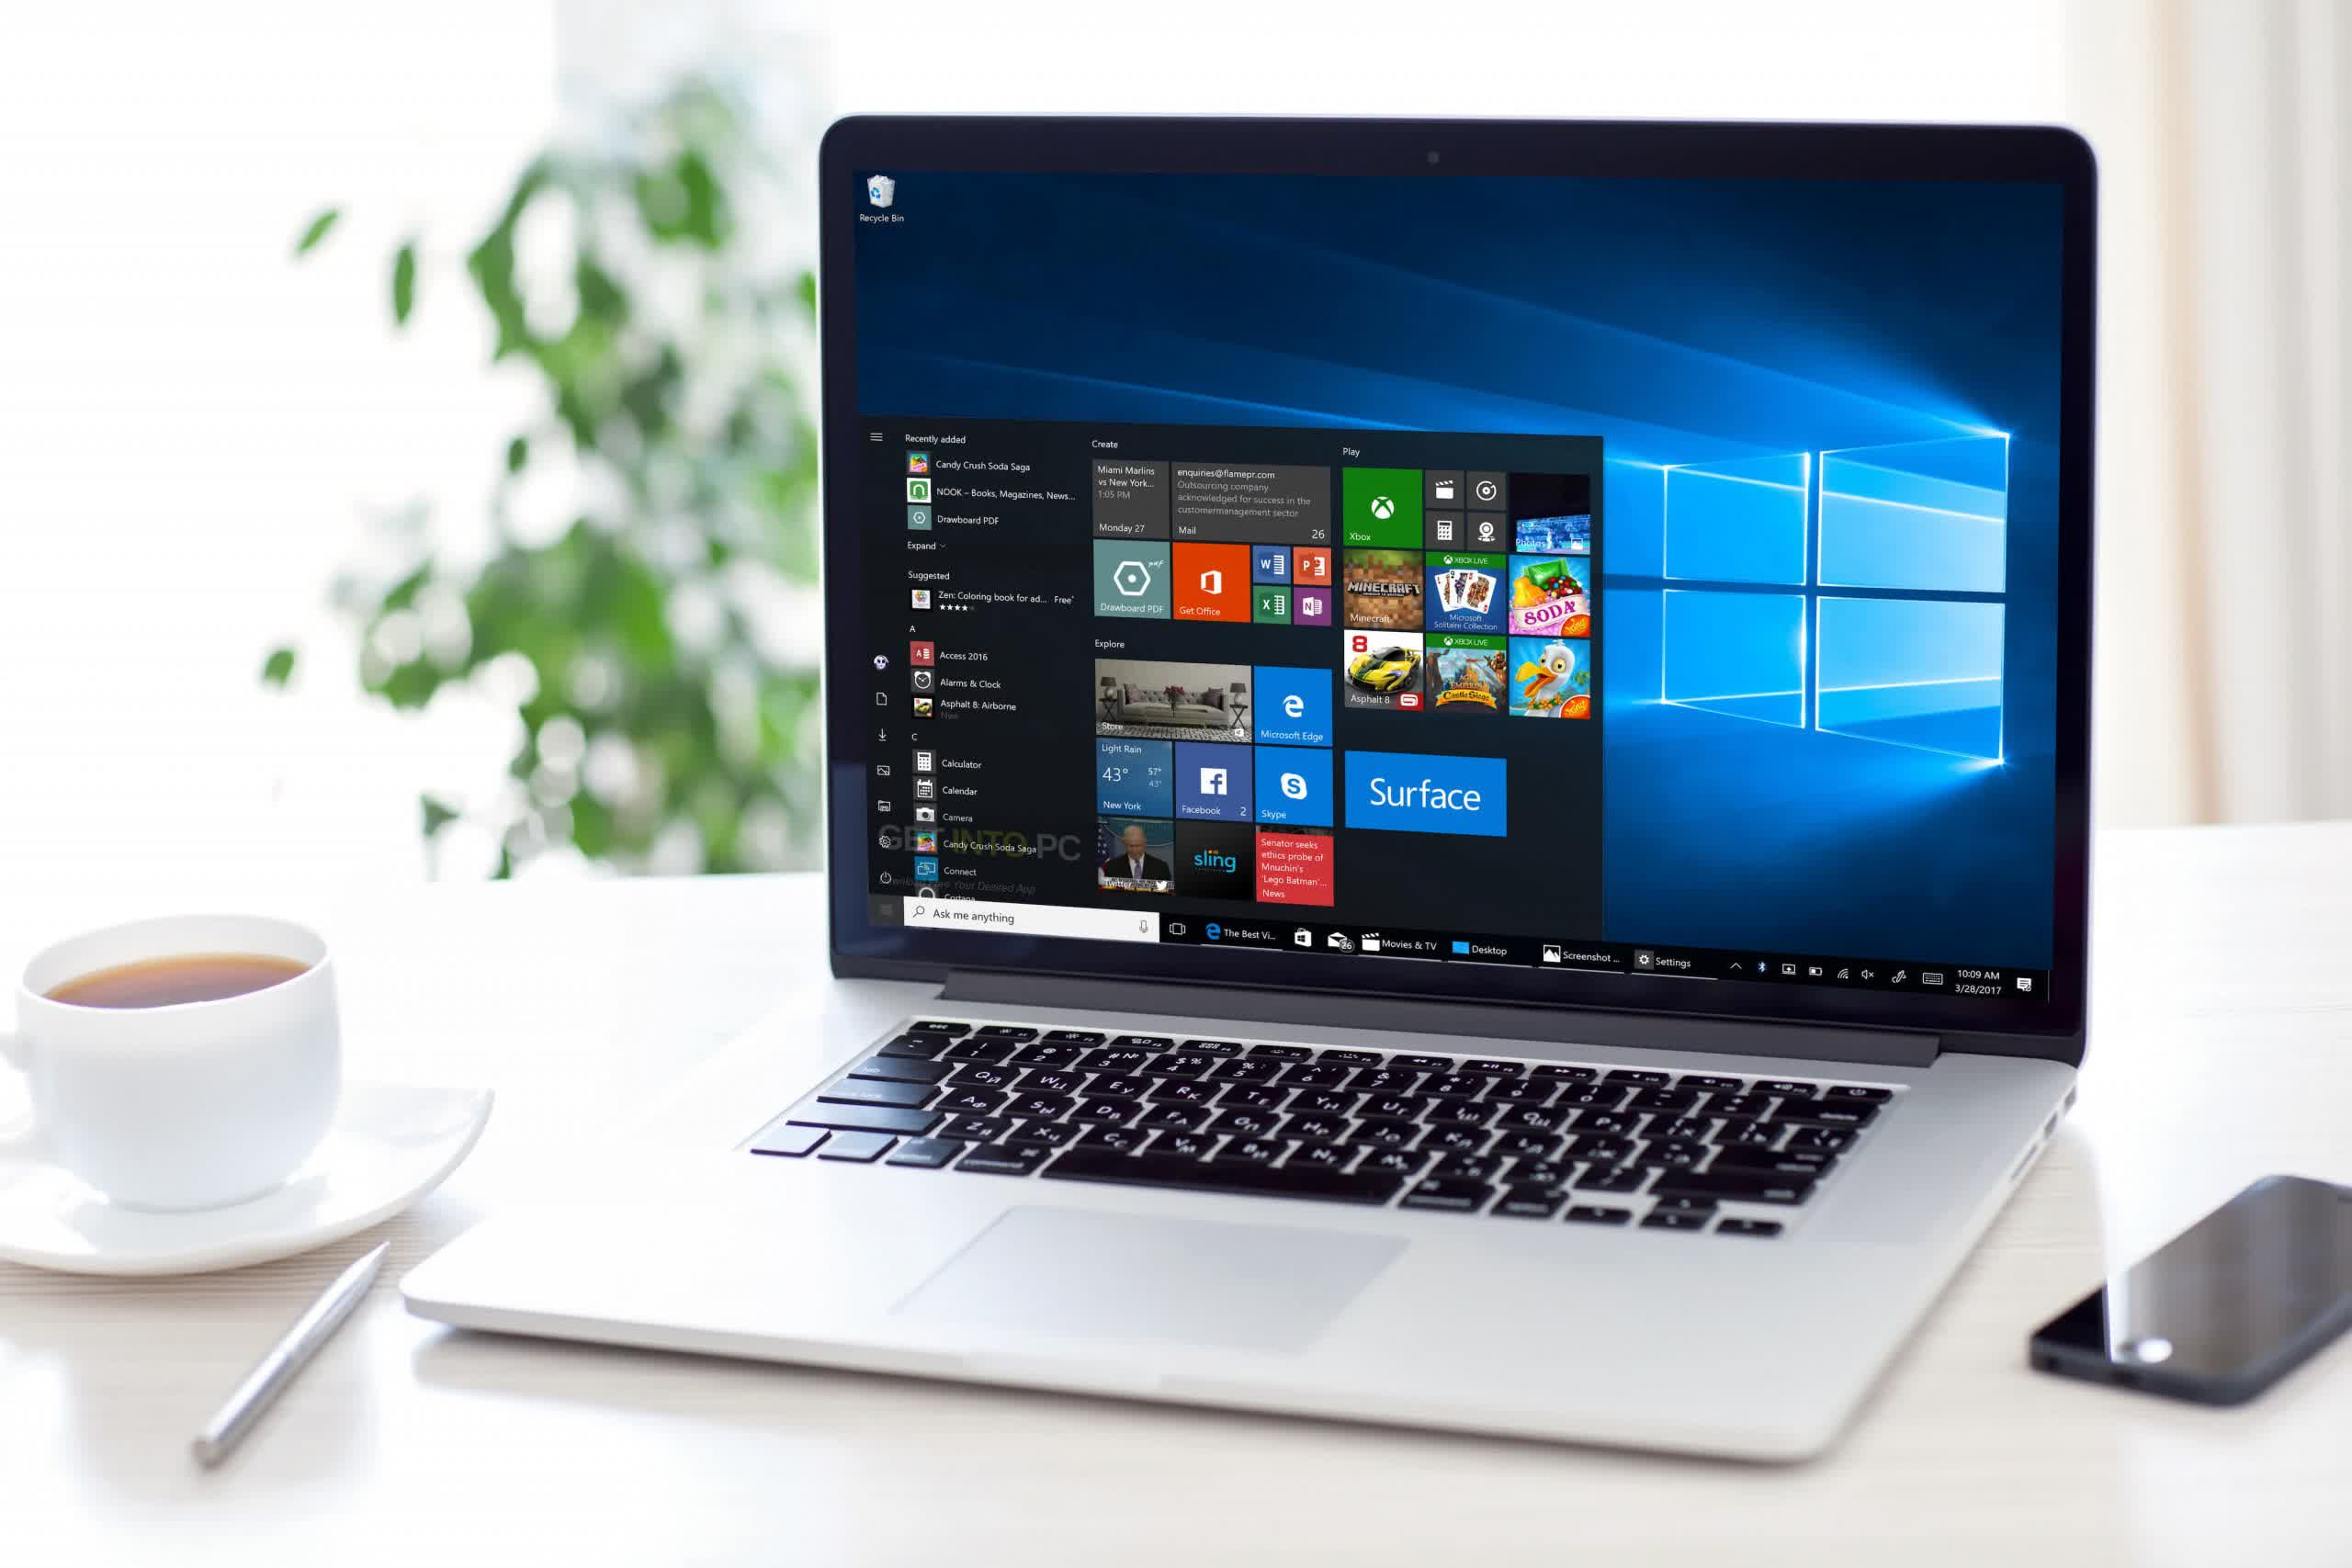 'Windows 10 on Arm' runs better on an M1 Mac than it does on the Surface Pro X